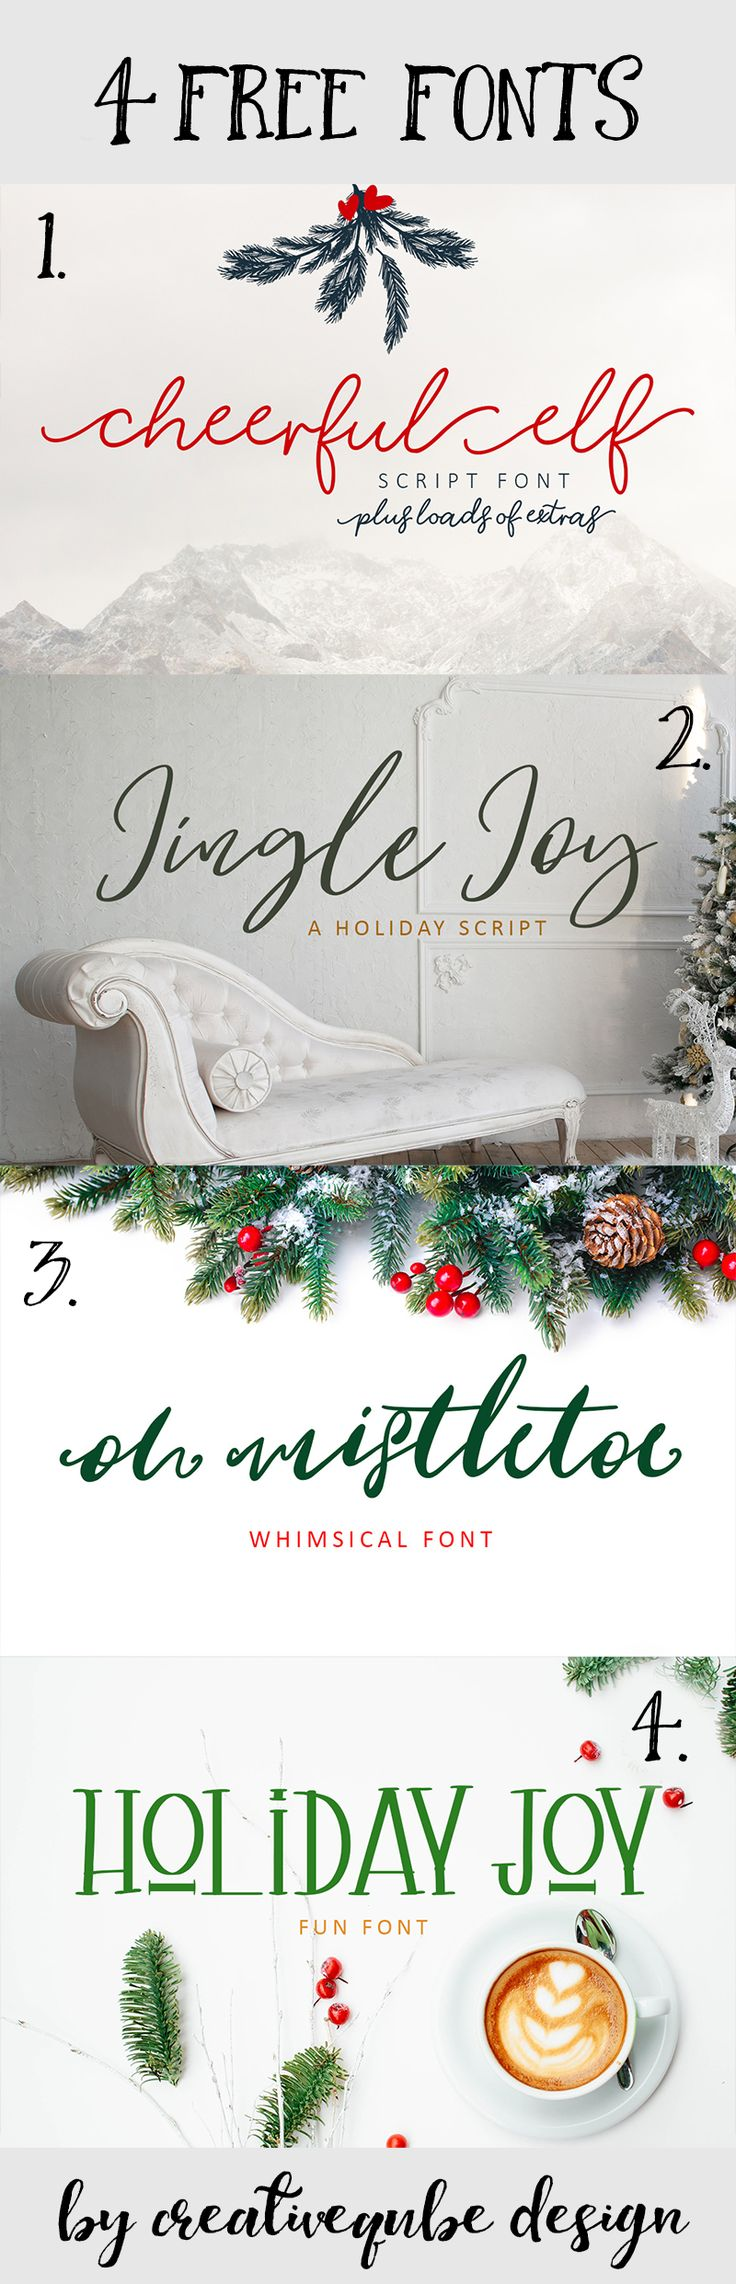 4 Free Fonts: Cheerful Elf, Jingle Joy, Oh Mistletoe, Holiday Joy